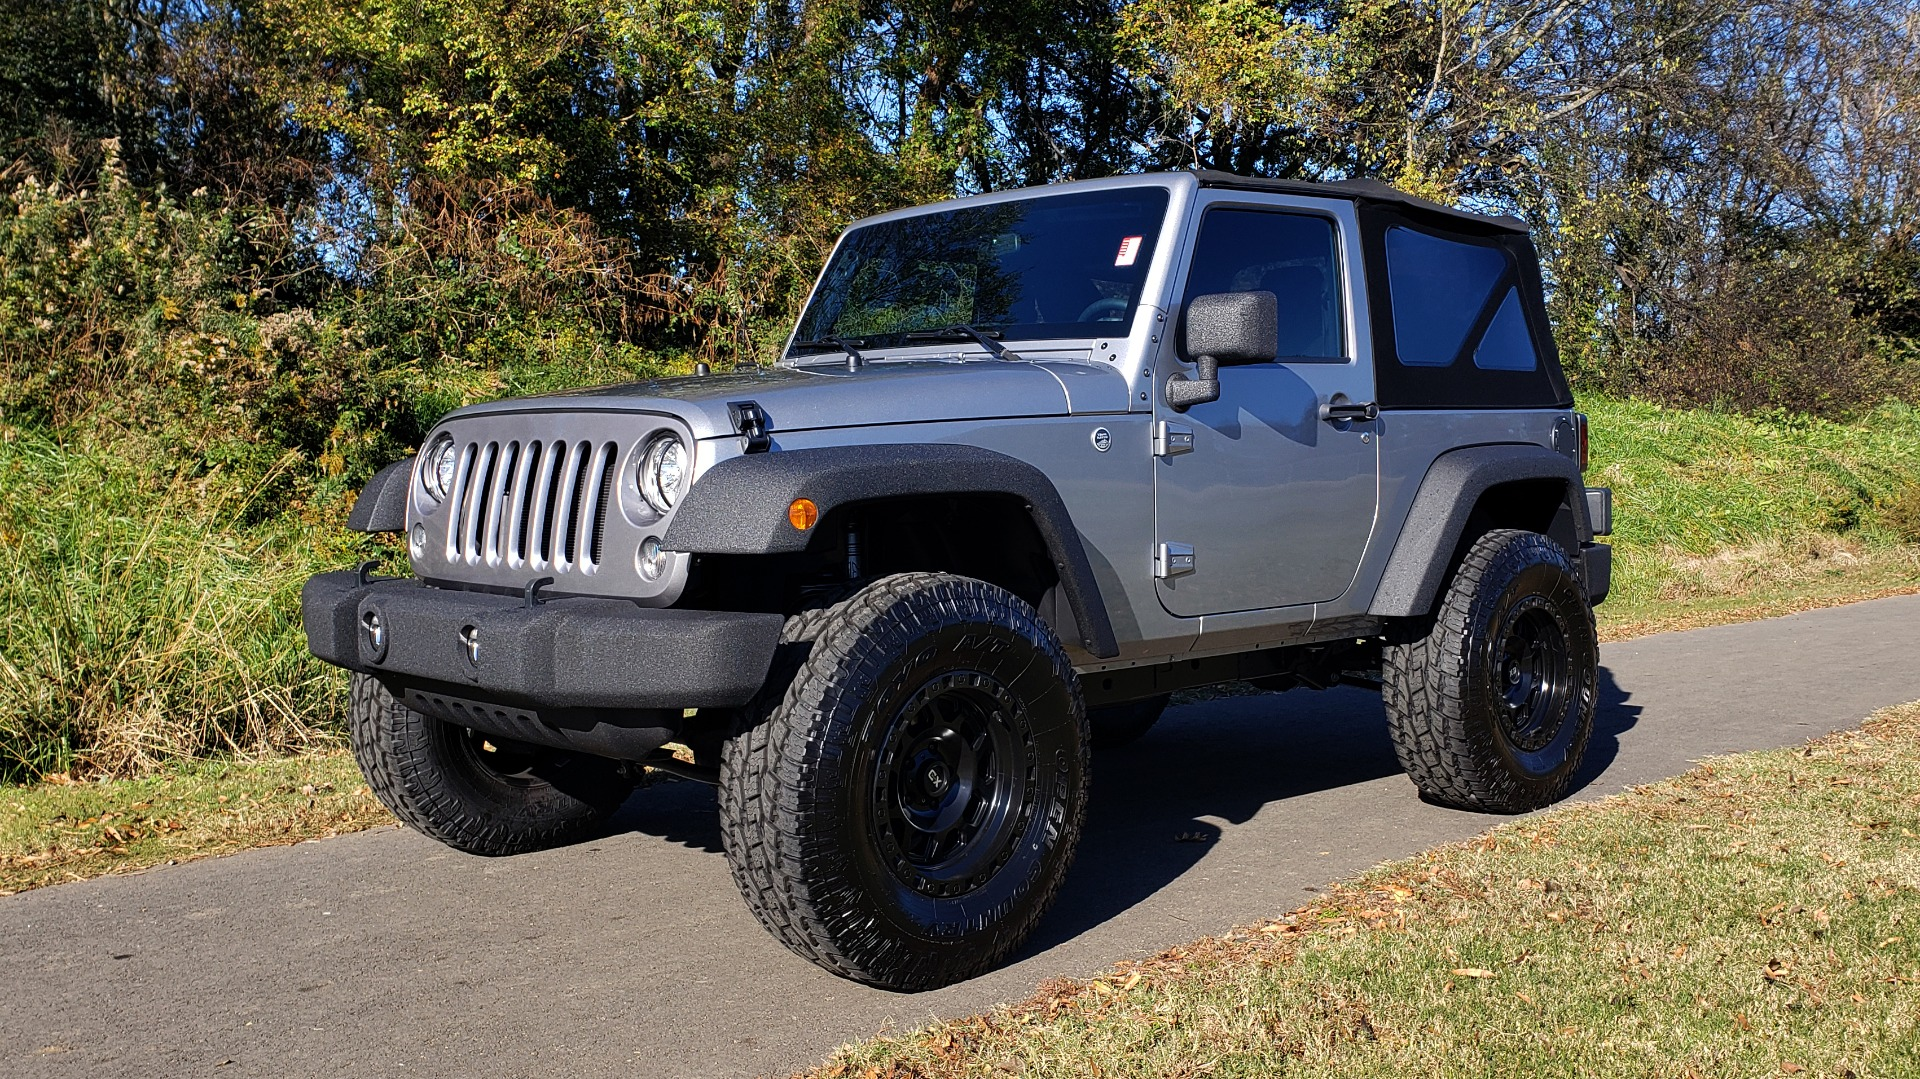 Used 2017 Jeep WRANGLER SPORT 4X4 / 3.6L V6 / MANUAL / AIR / LED LIGHTING / TOW GRP / AL for sale $31,900 at Formula Imports in Charlotte NC 28227 4